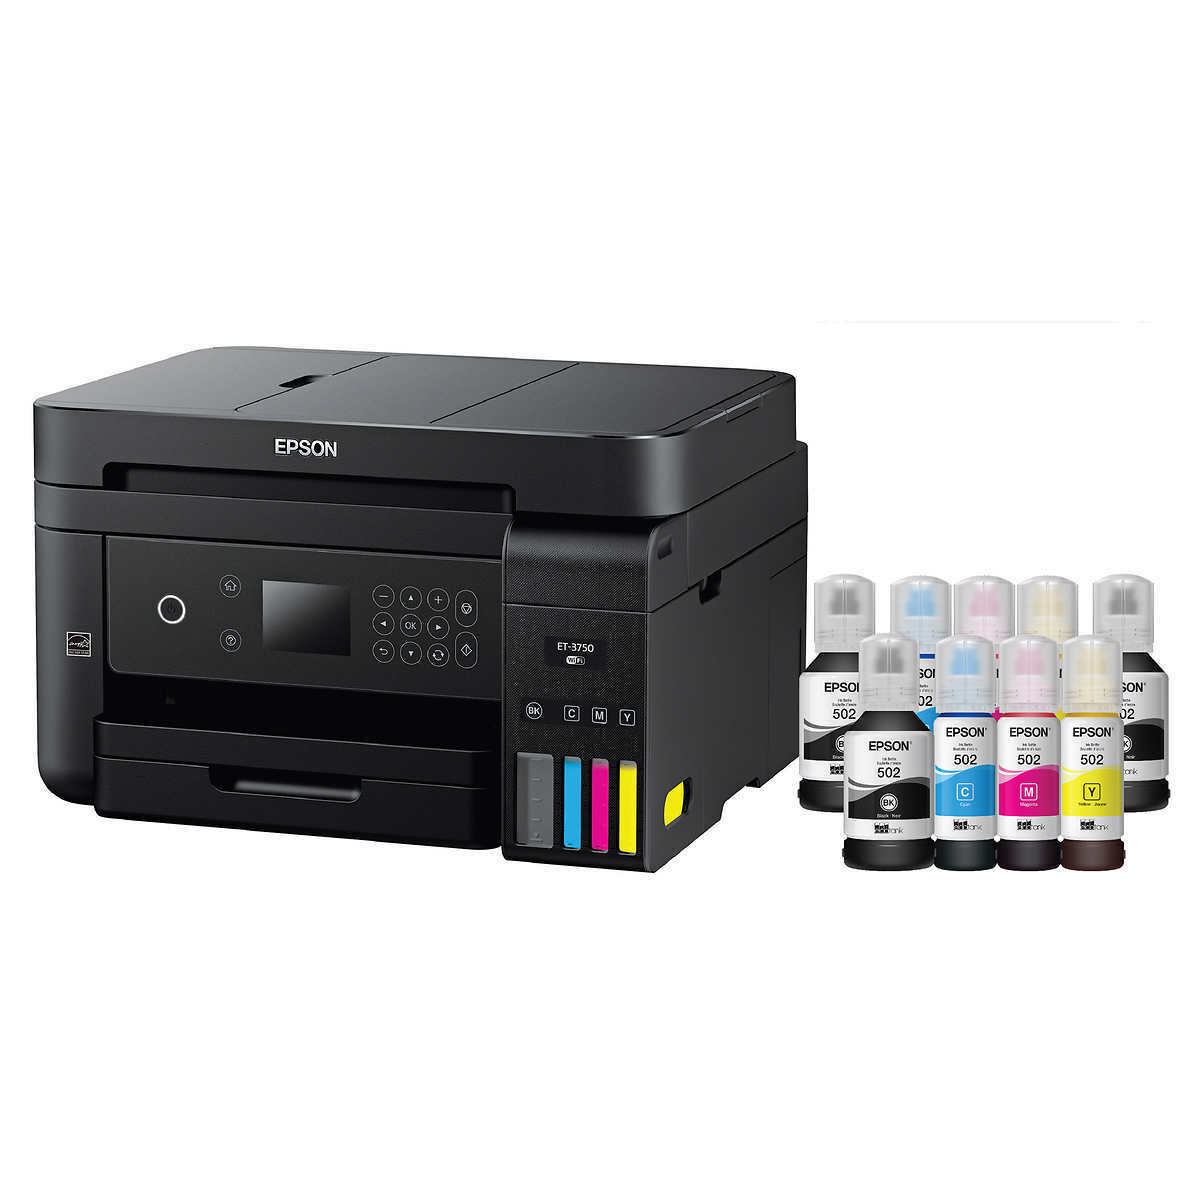 Epson WorkForce ET-3750 Special Edition EcoTank All-in-One P